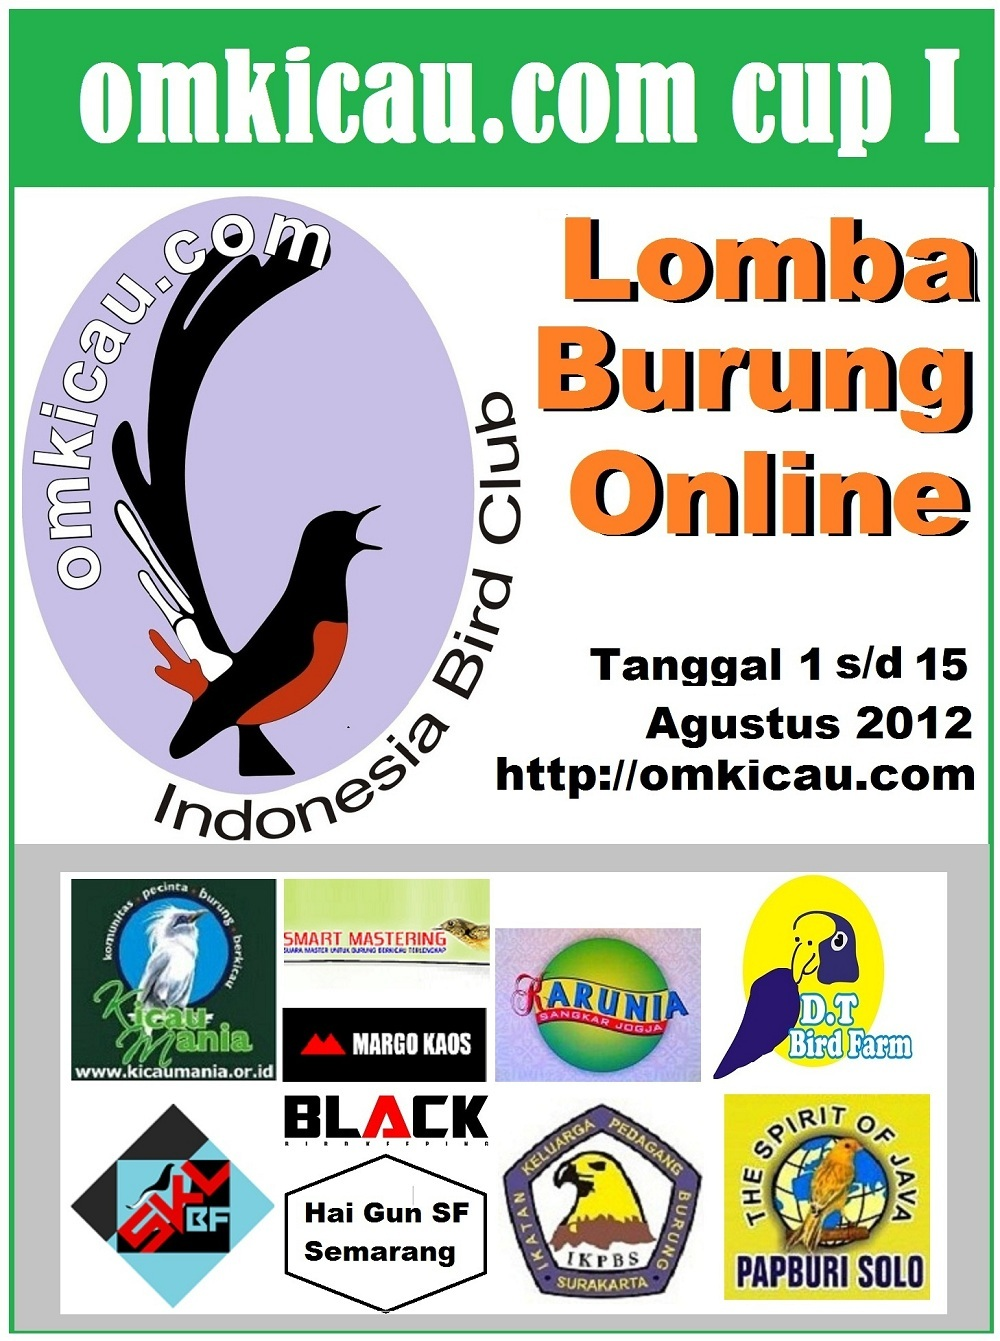 LOGO LOMBA BURUNG ONLINE OMKICAU.COM CUP I - REVISI